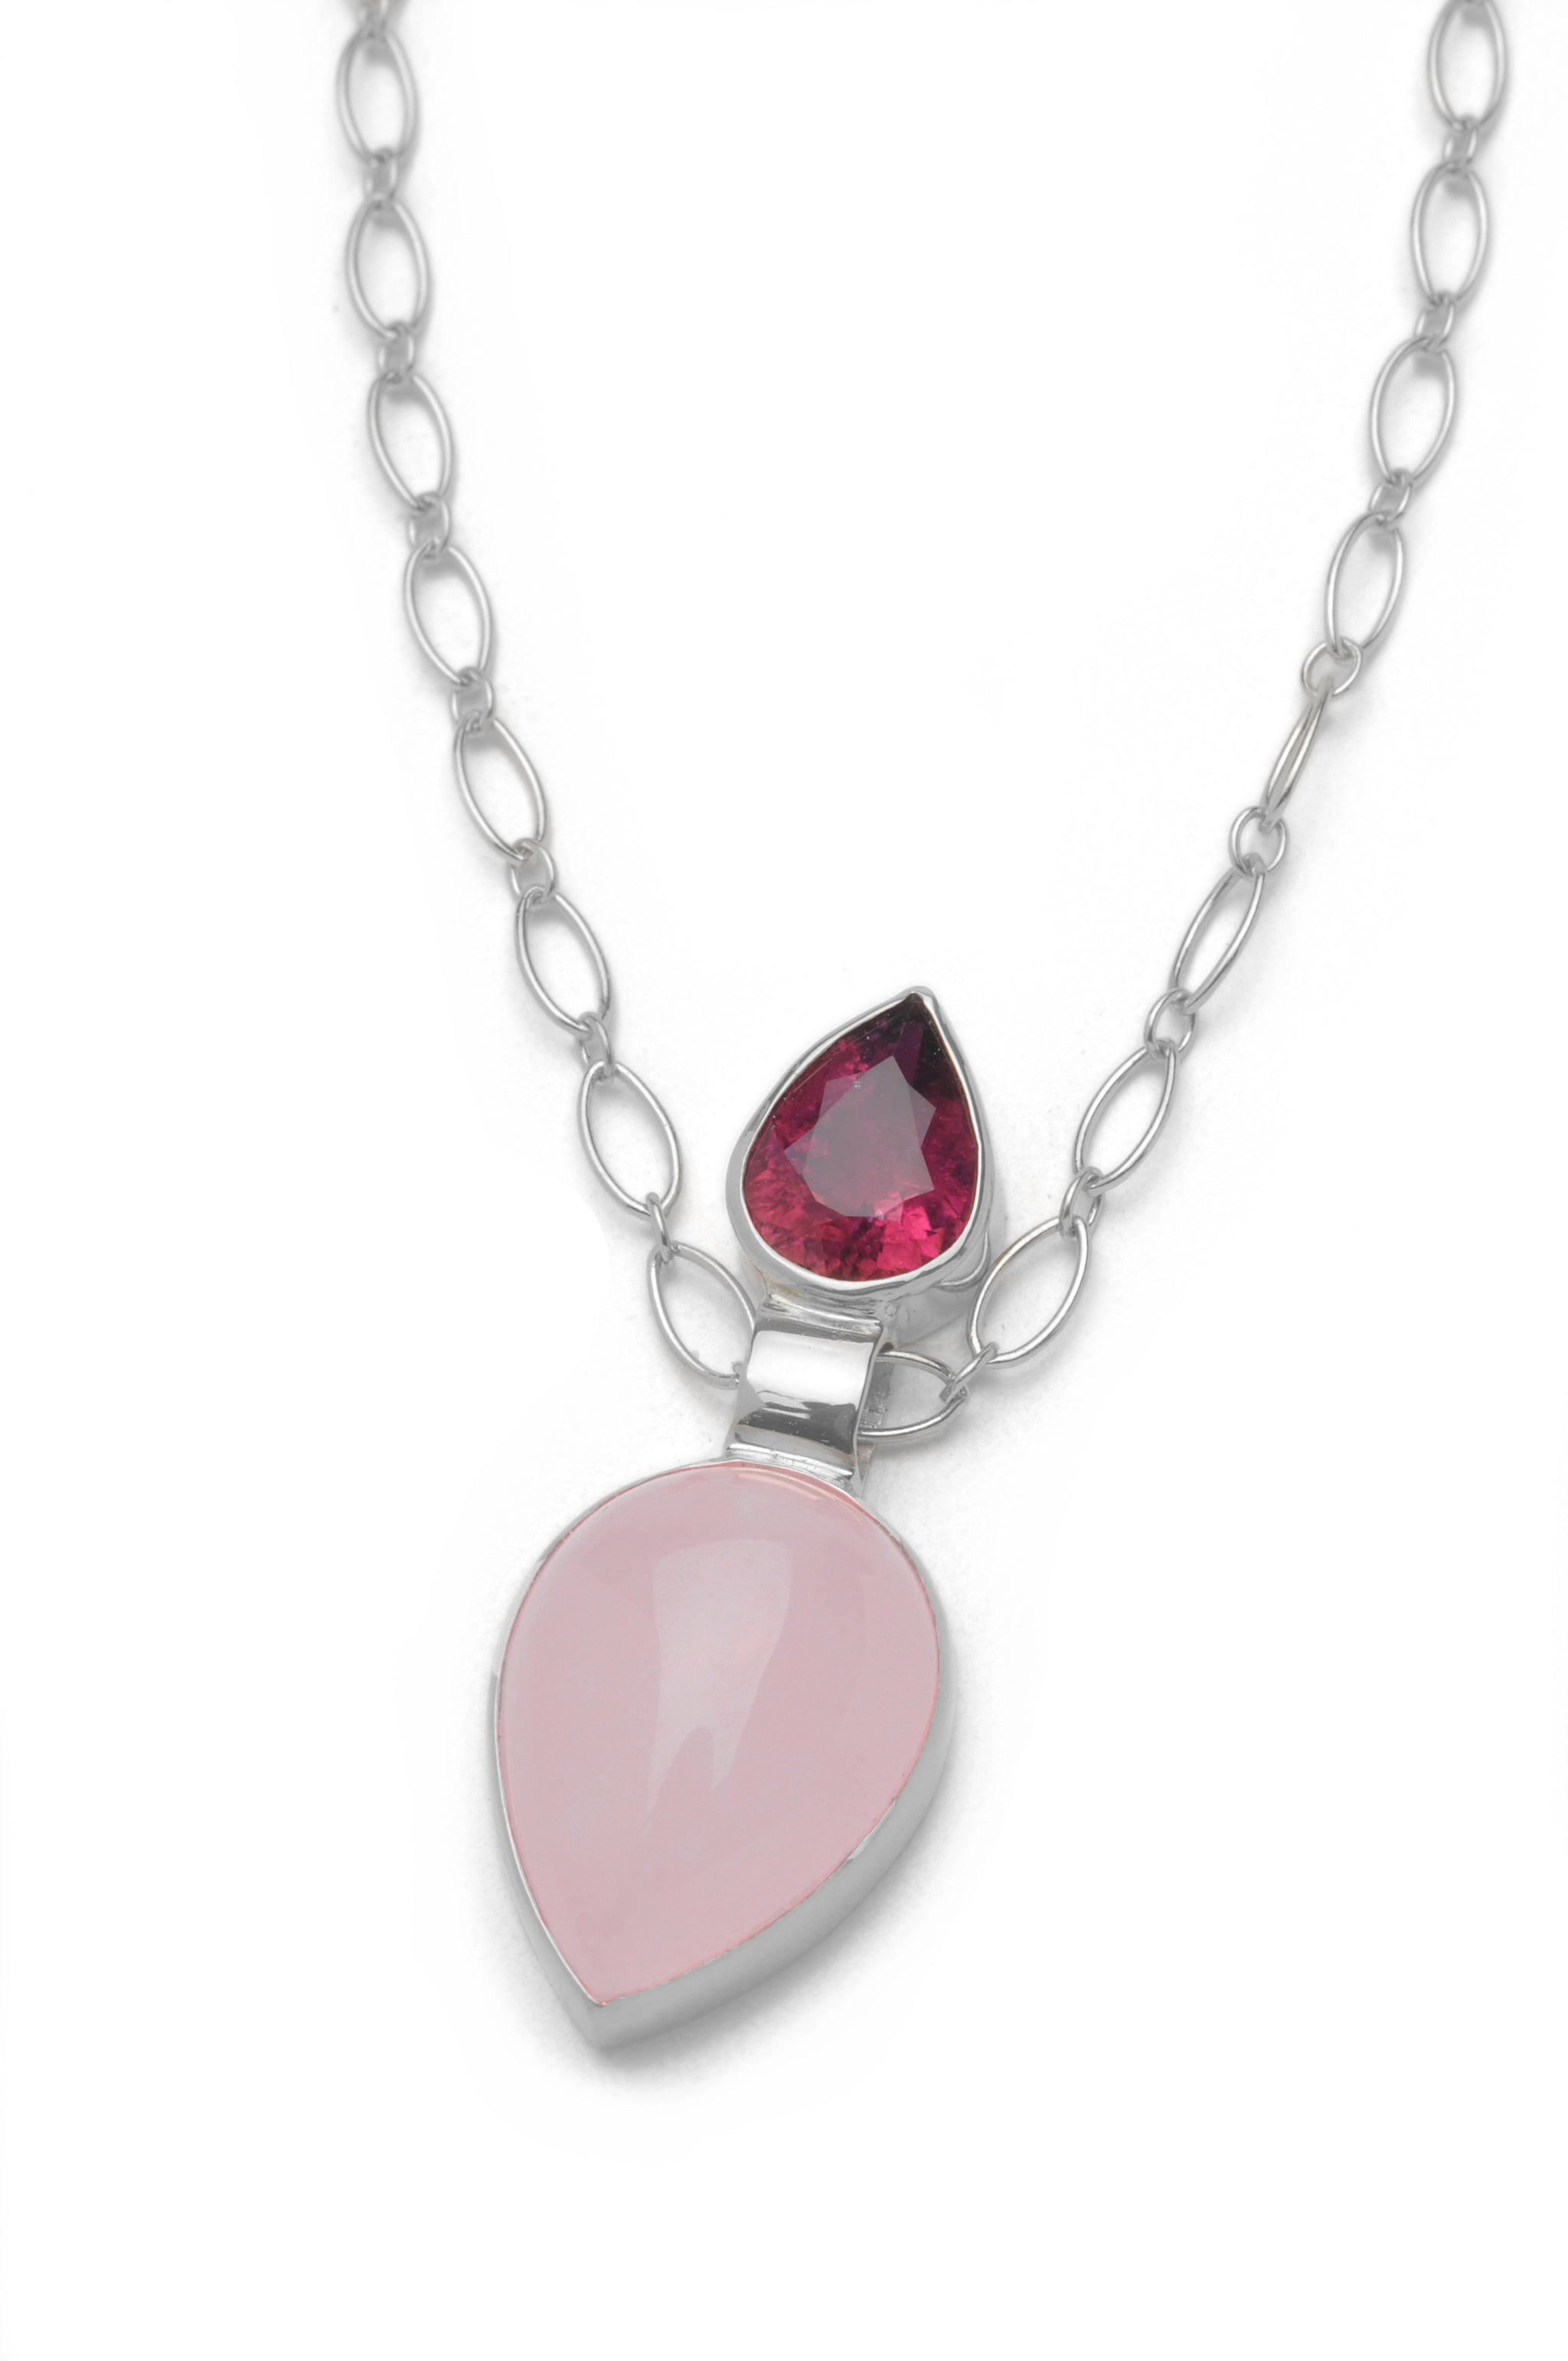 tourmaline chain pink silver il necklace fullxfull and plated p sterling natural oxidized gold druv pendant